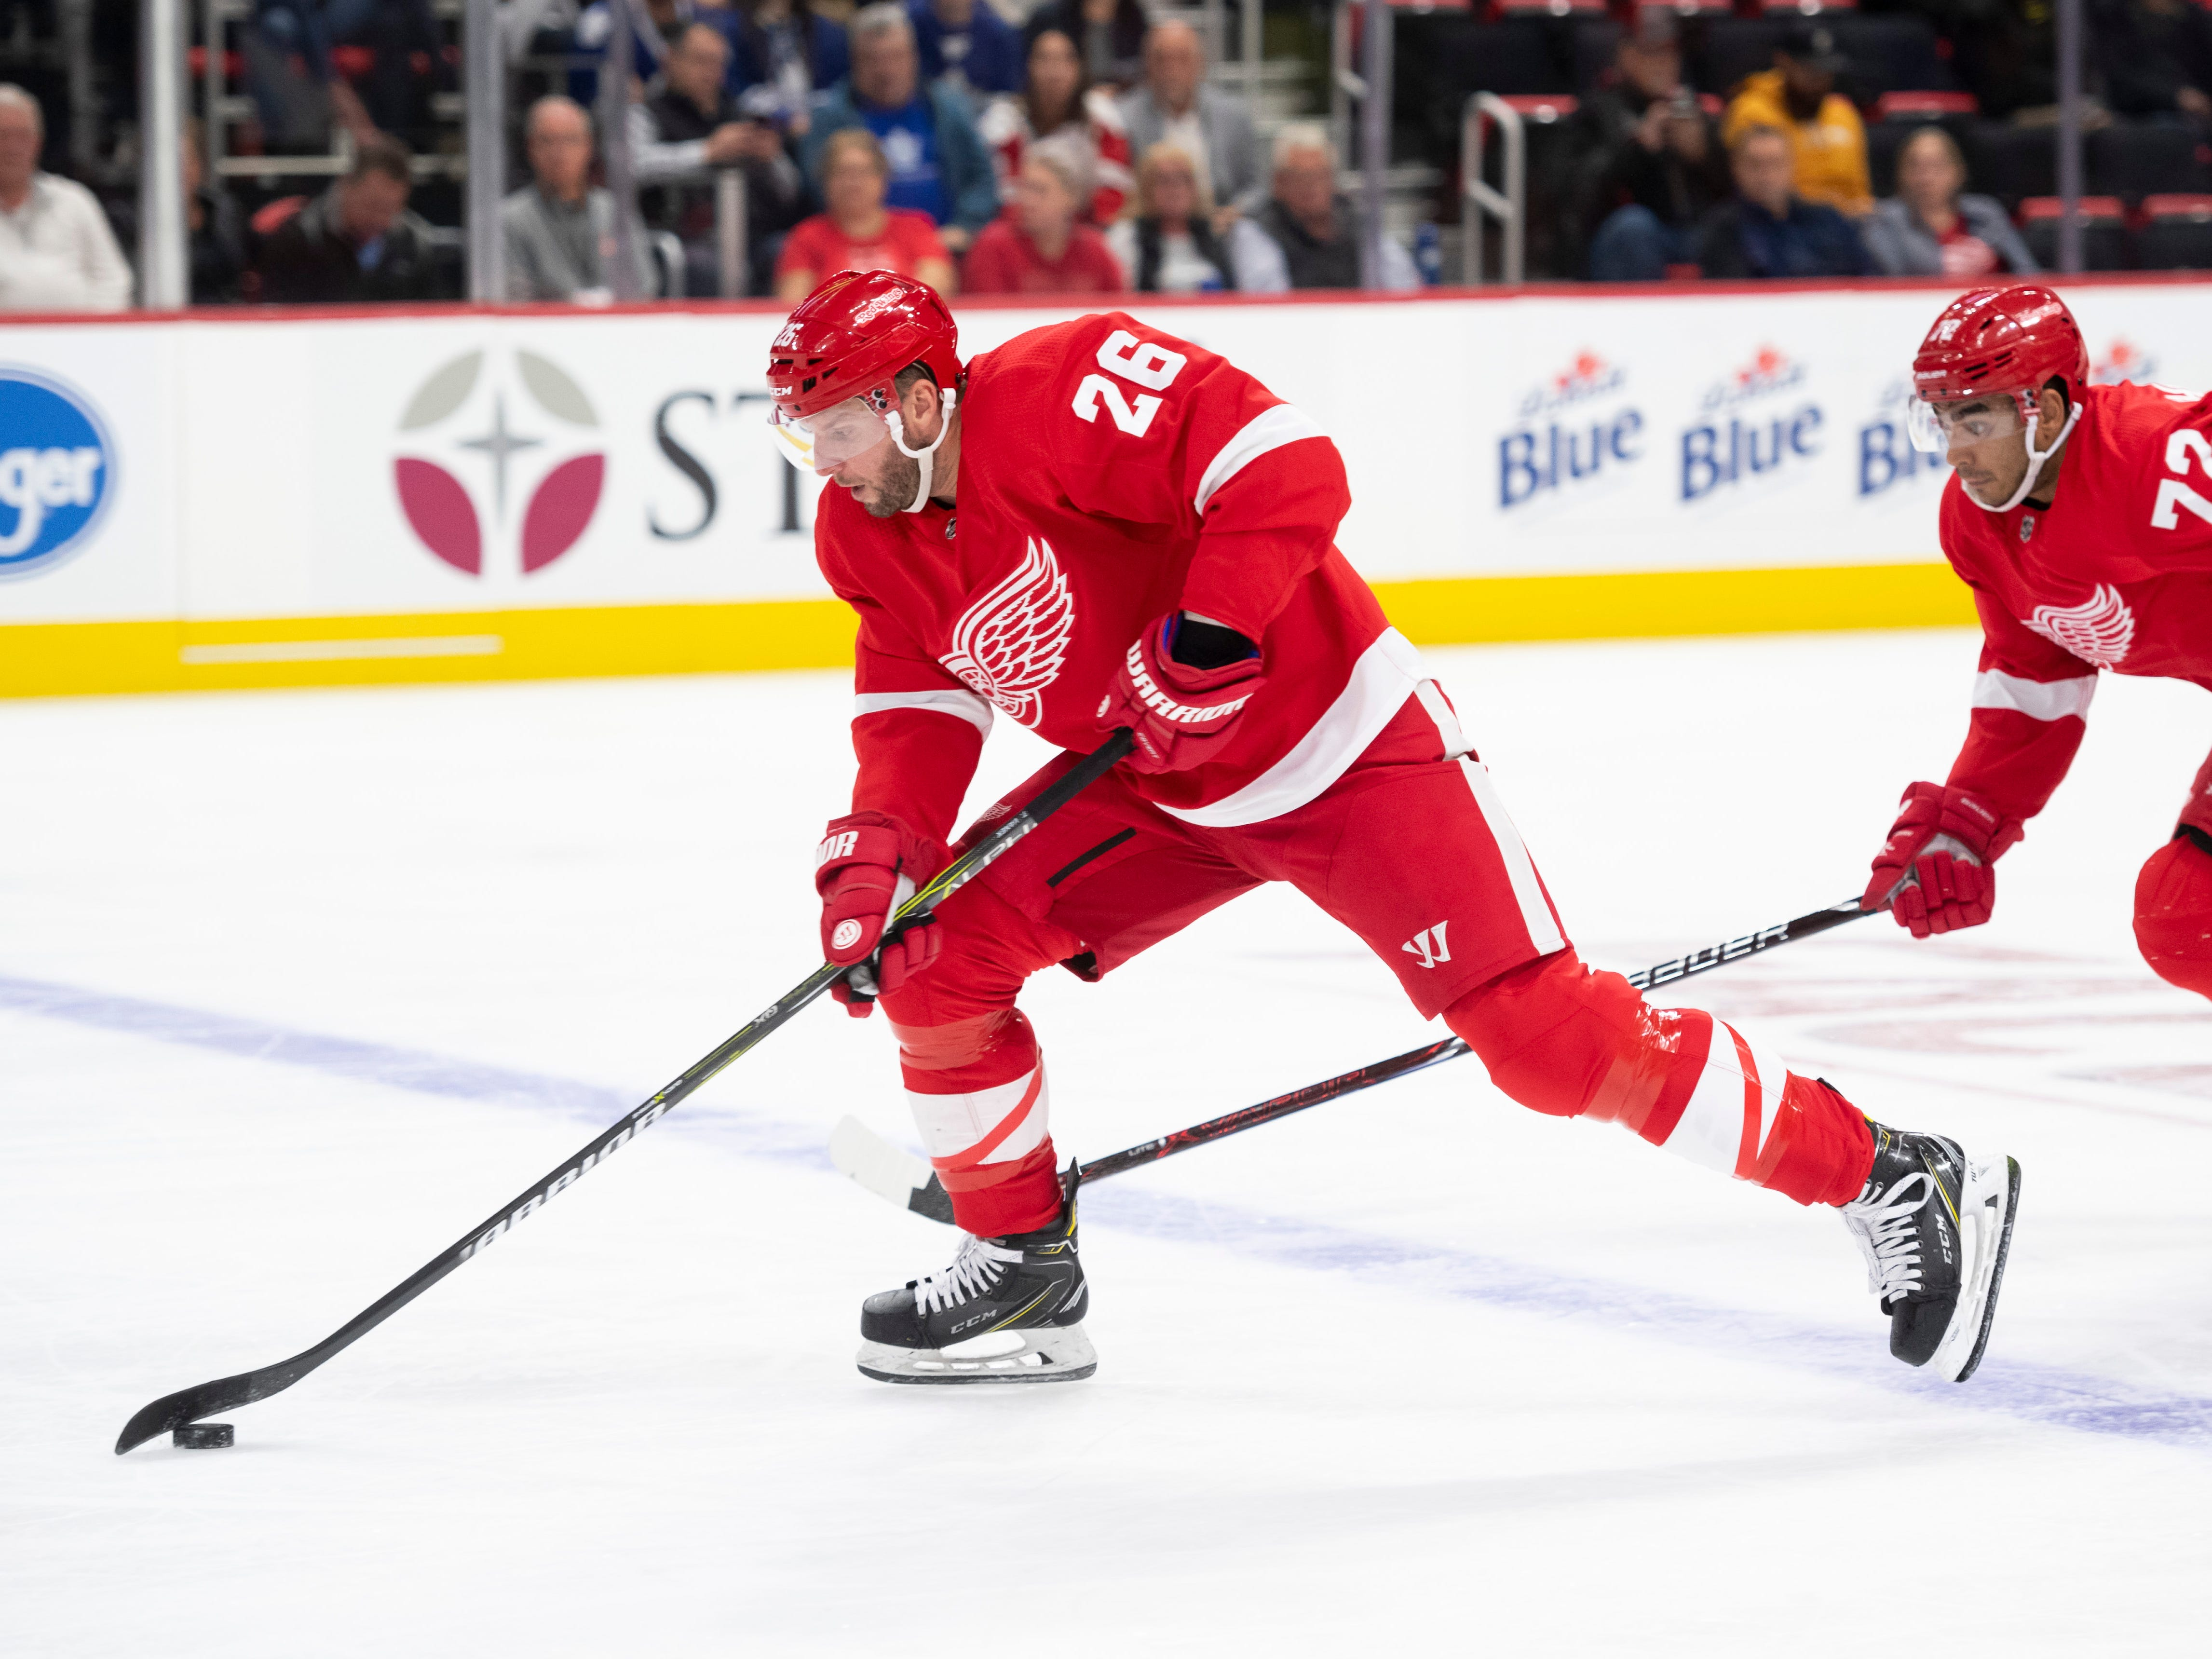 20. Thomas Vanek, LW, Detroit: Vanek's name seemingly always appears on this list at this time of year. The fact Vanek is now healthy and heating up offensively could interest a contender lacking offensive depth.